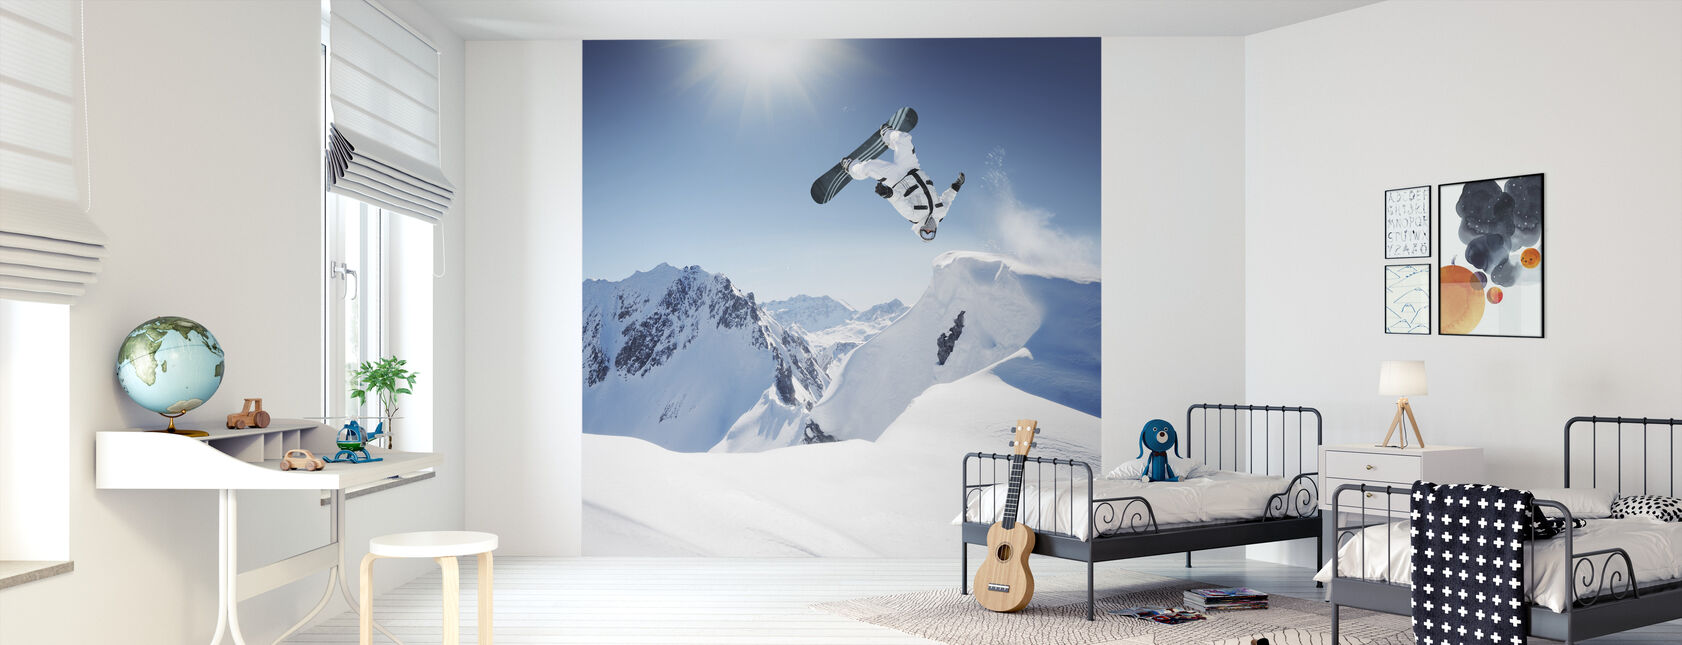 Snowboarder Backflip - Behang - Kinderkamer